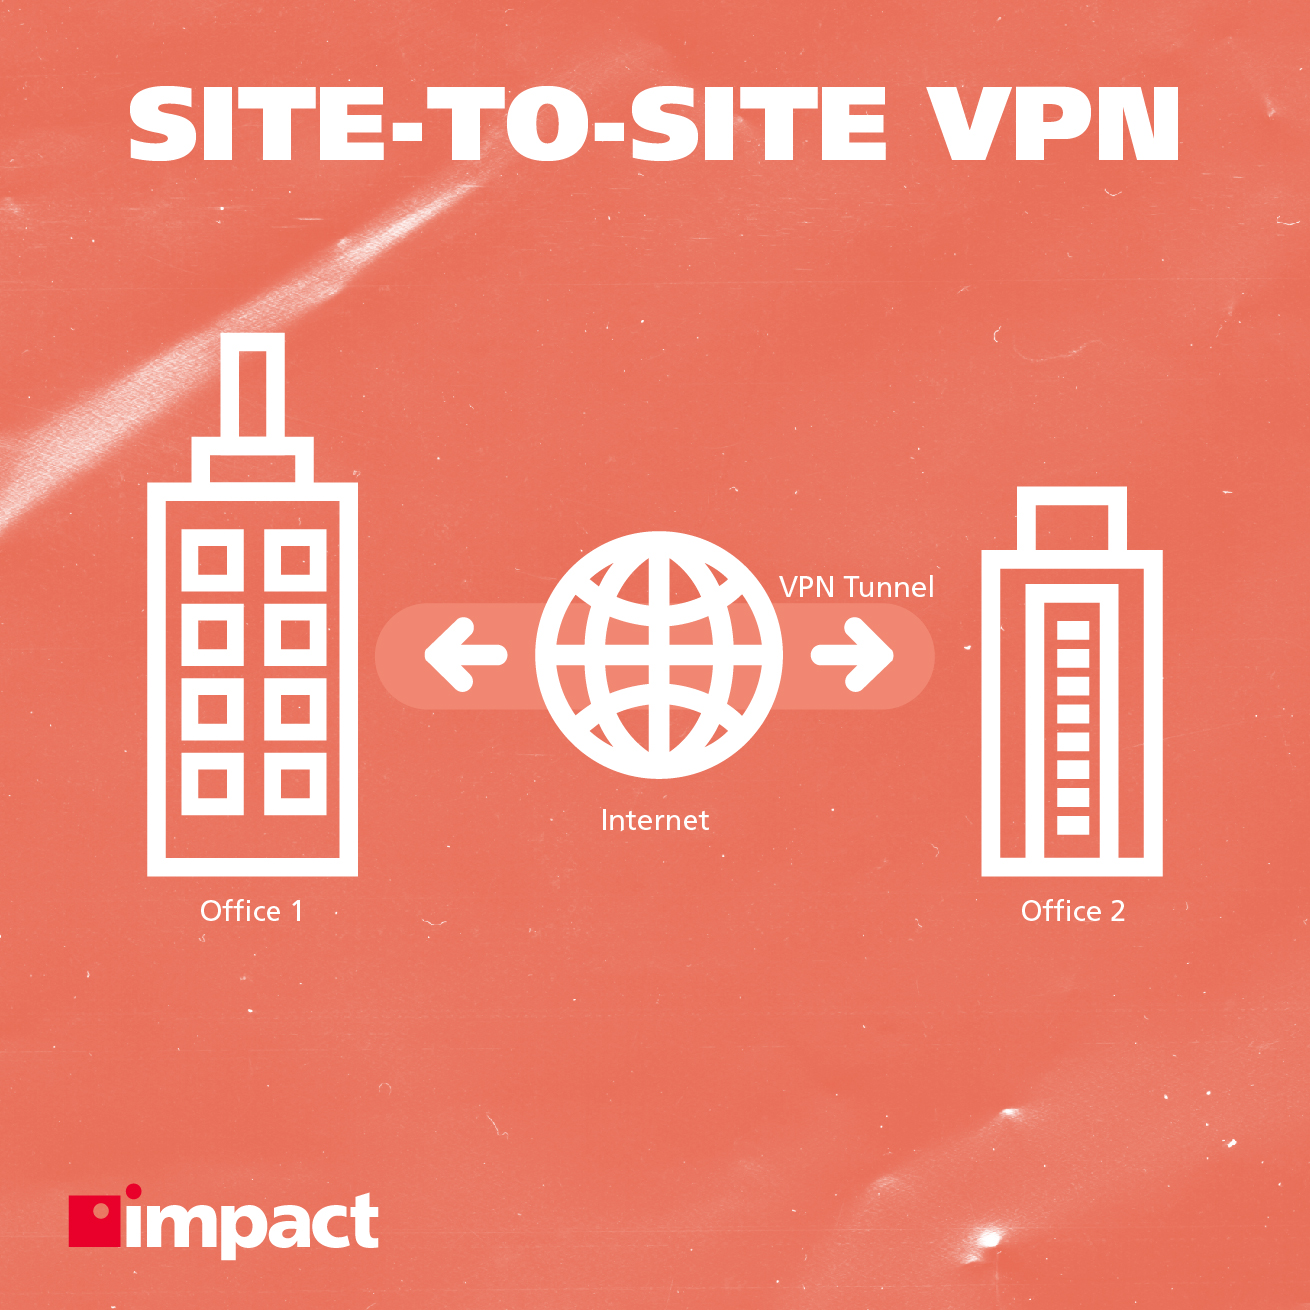 Site to site VPN visual explainer